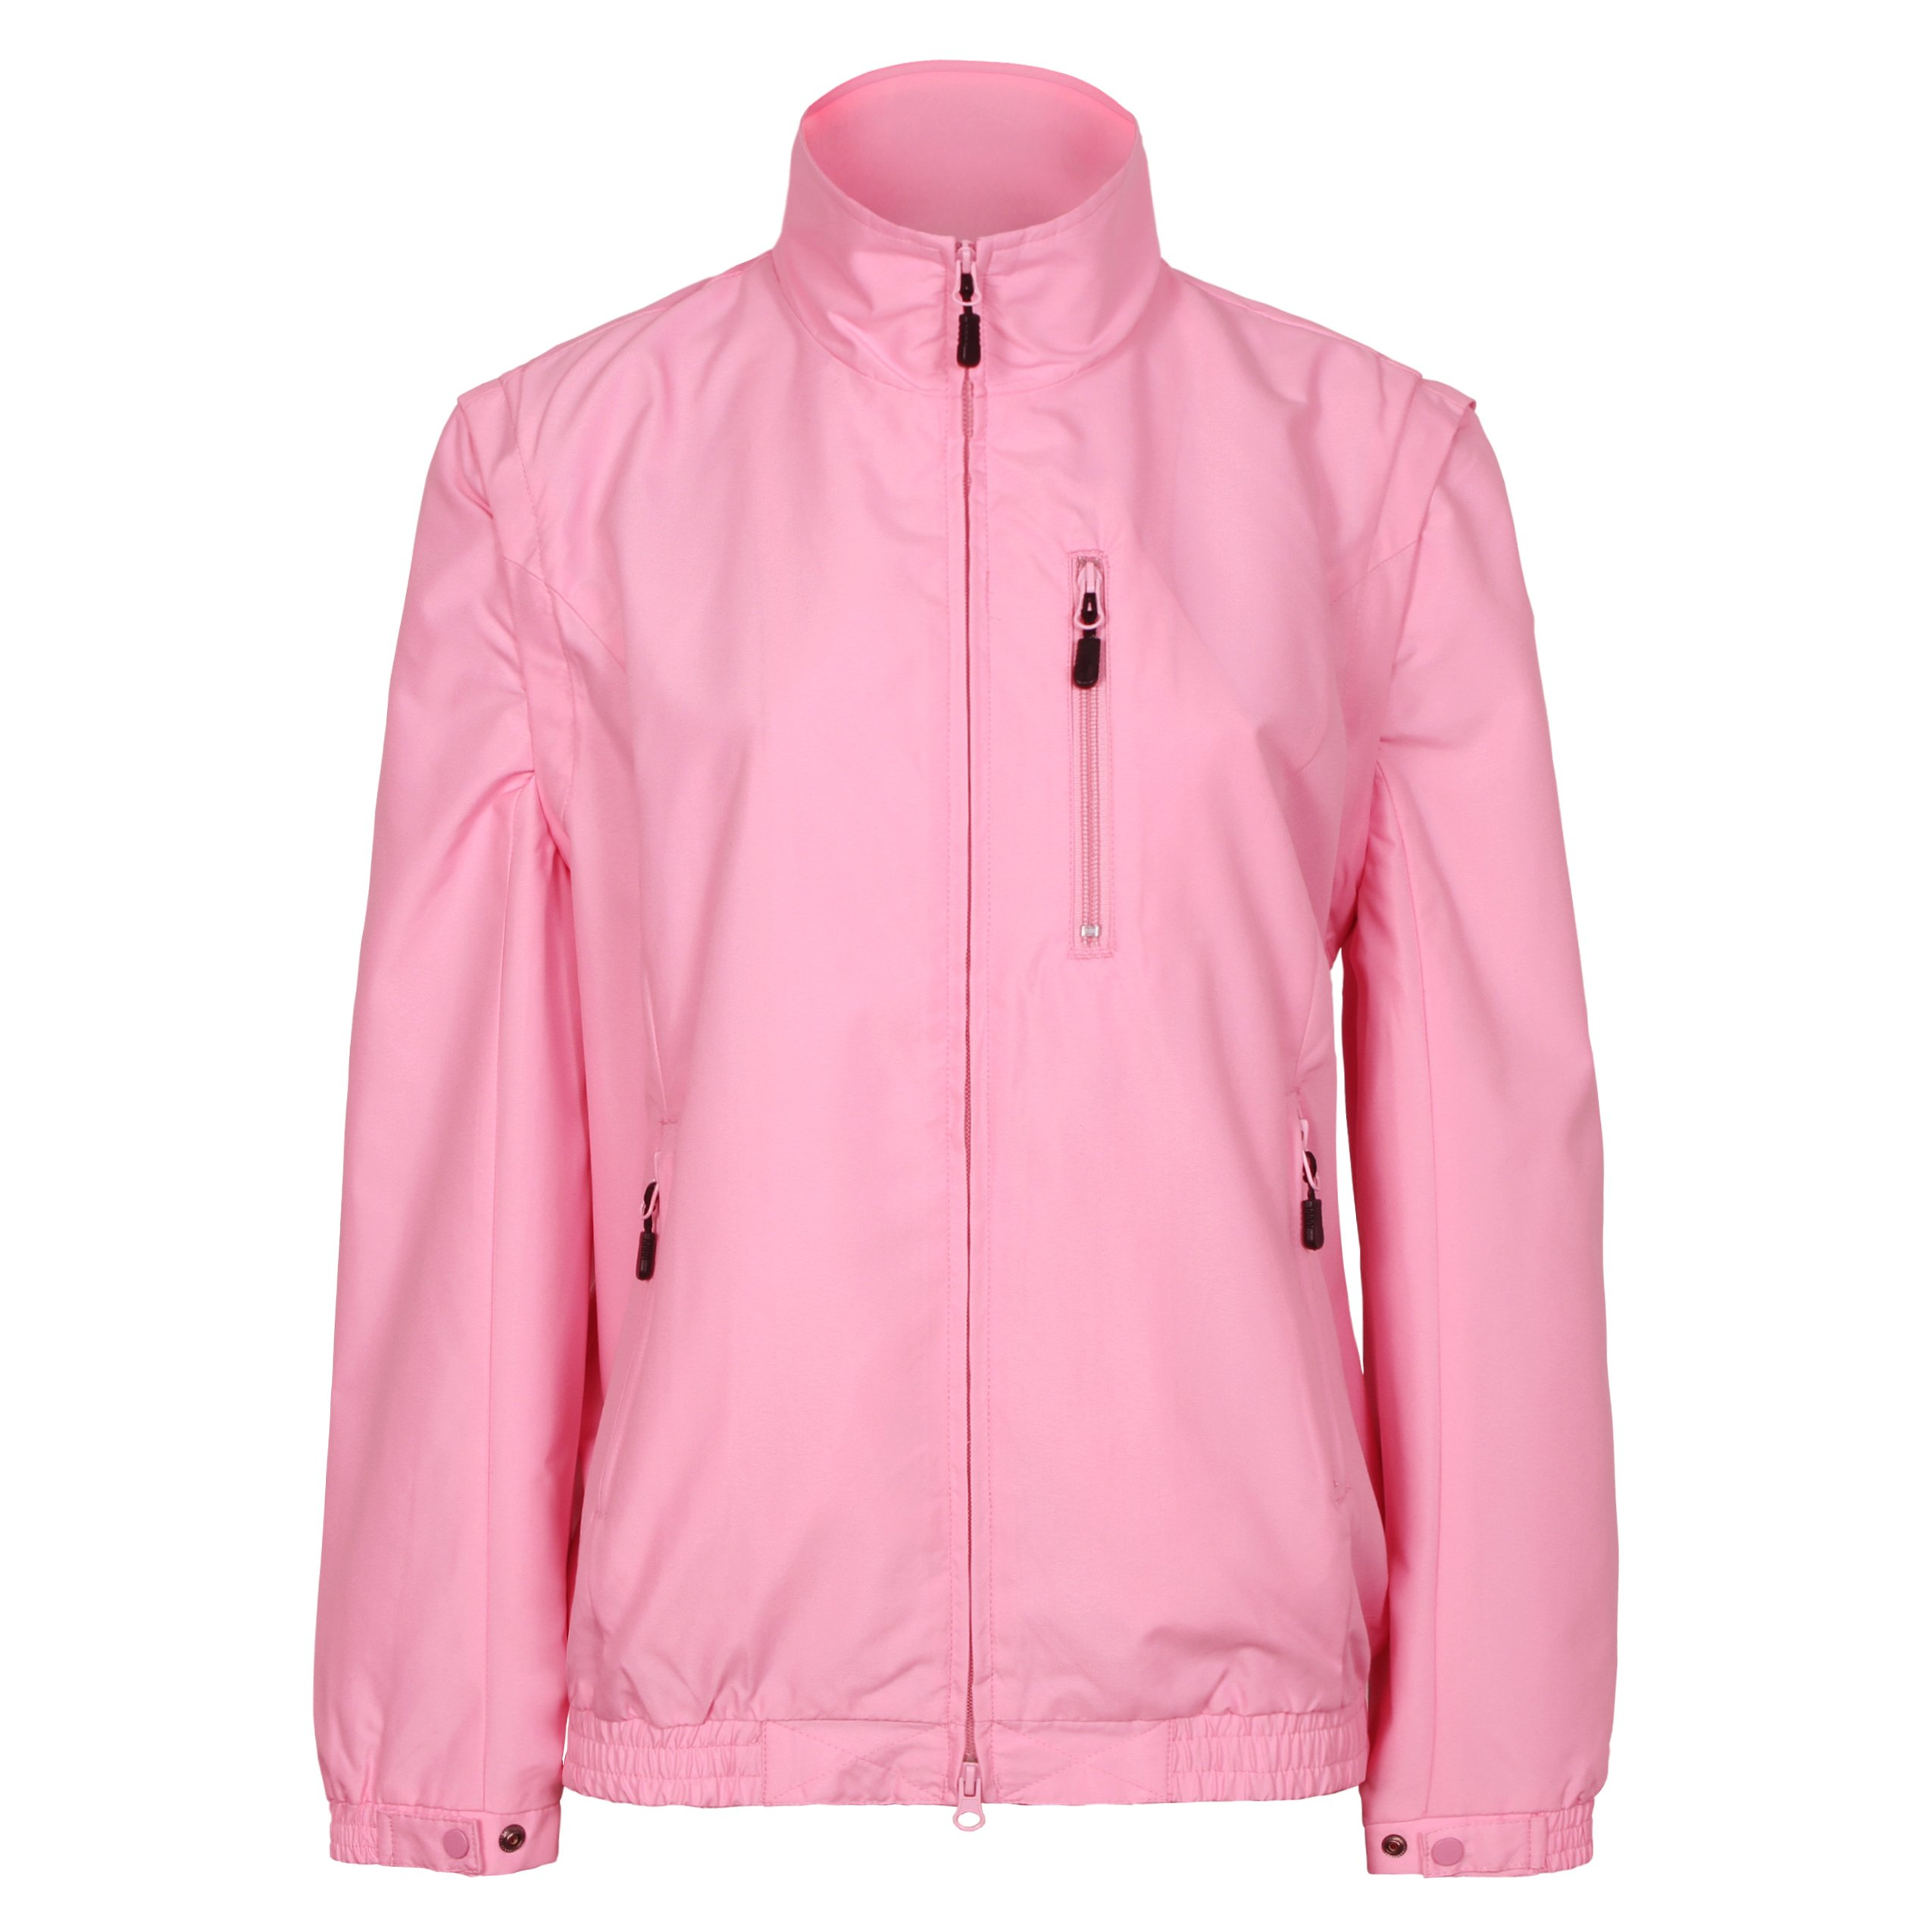 Tres Bien Golf Women's 2 in 1 Convertible Jacket / Vest (X-Large, Pink) by Tres Bien Golf